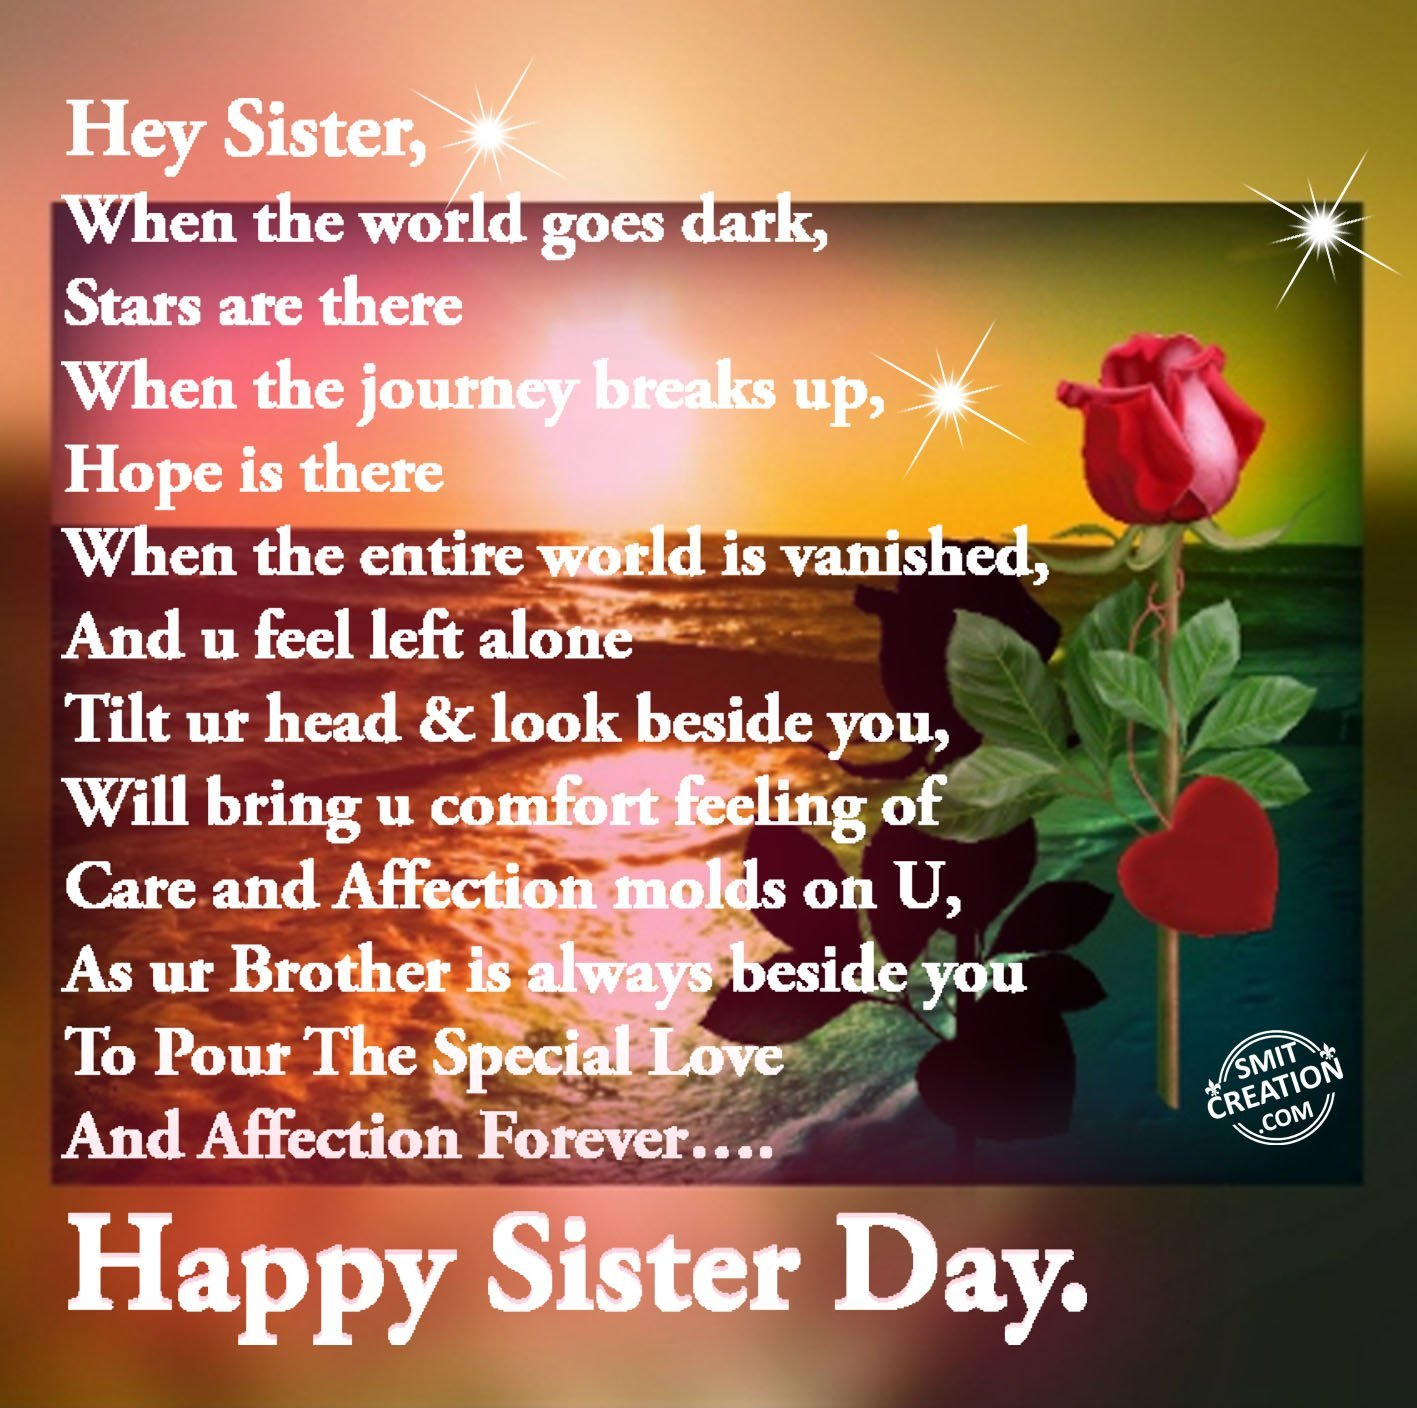 Sisters' Day in 2018/2019 - When, Where, Why, How is ...  |Sisterhood Day